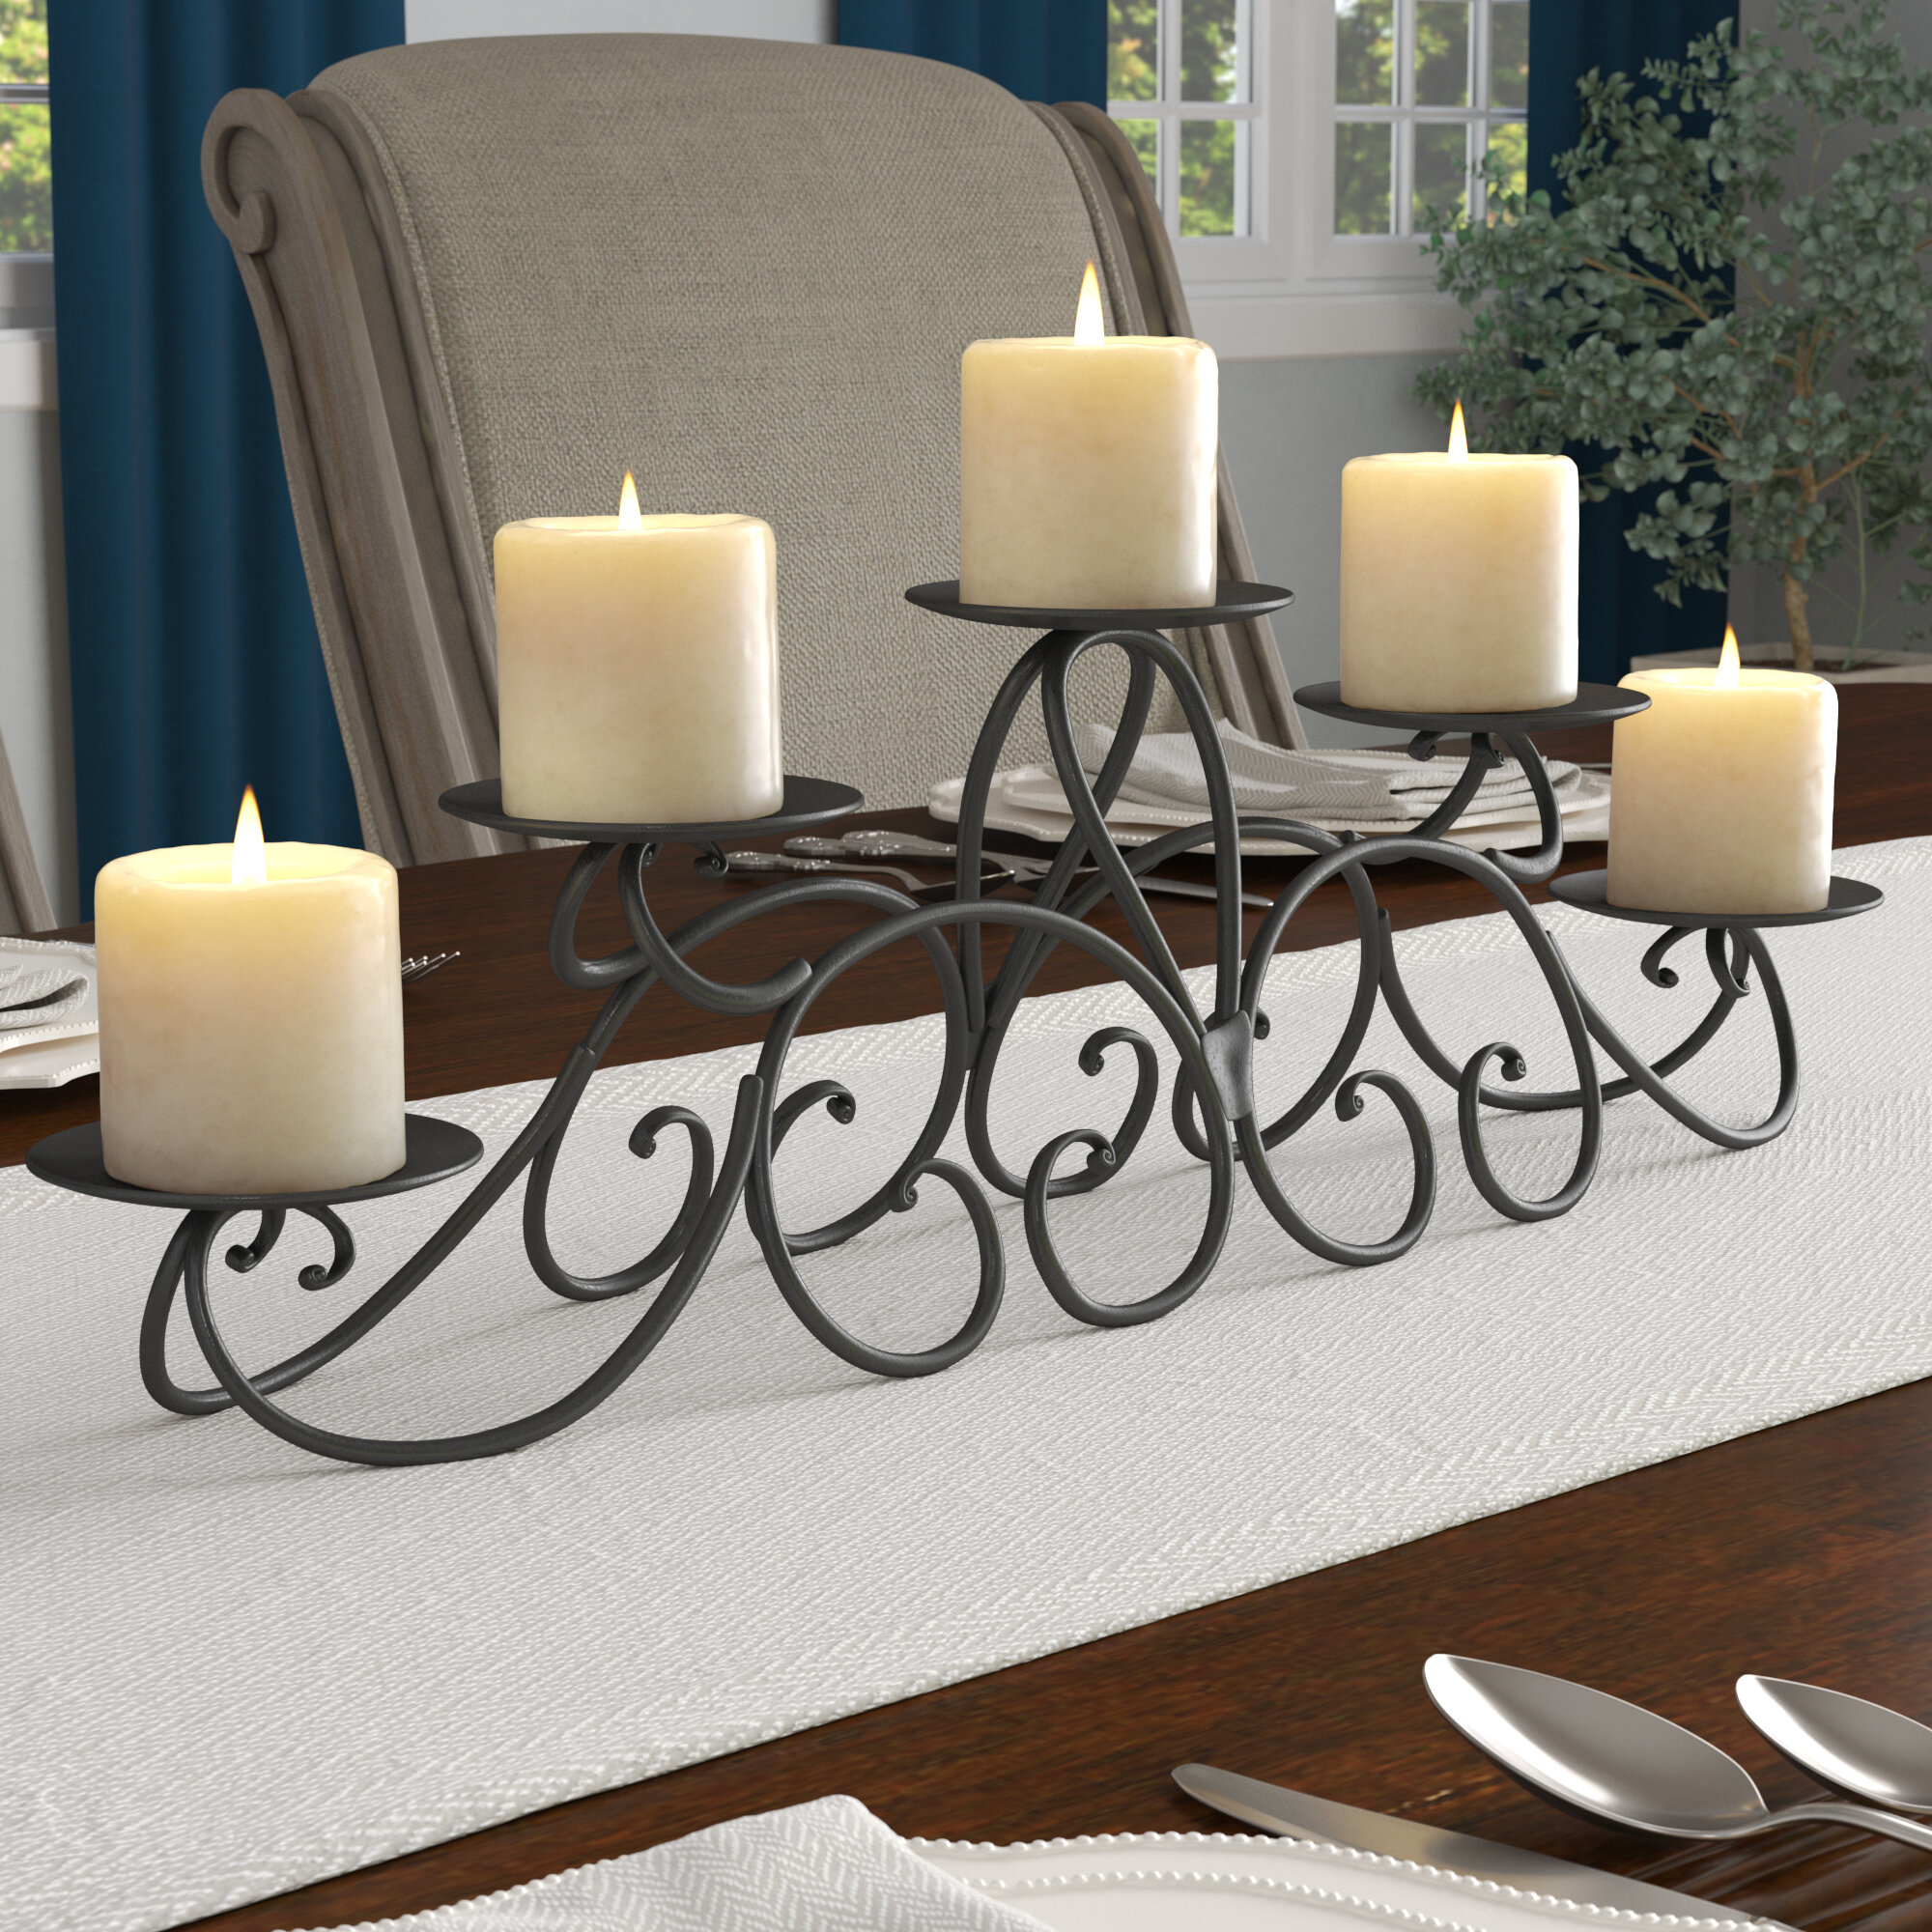 Stupendous Candelabra Fireplace Candle Holders Youll Love In 2019 Interior Design Ideas Gentotryabchikinfo